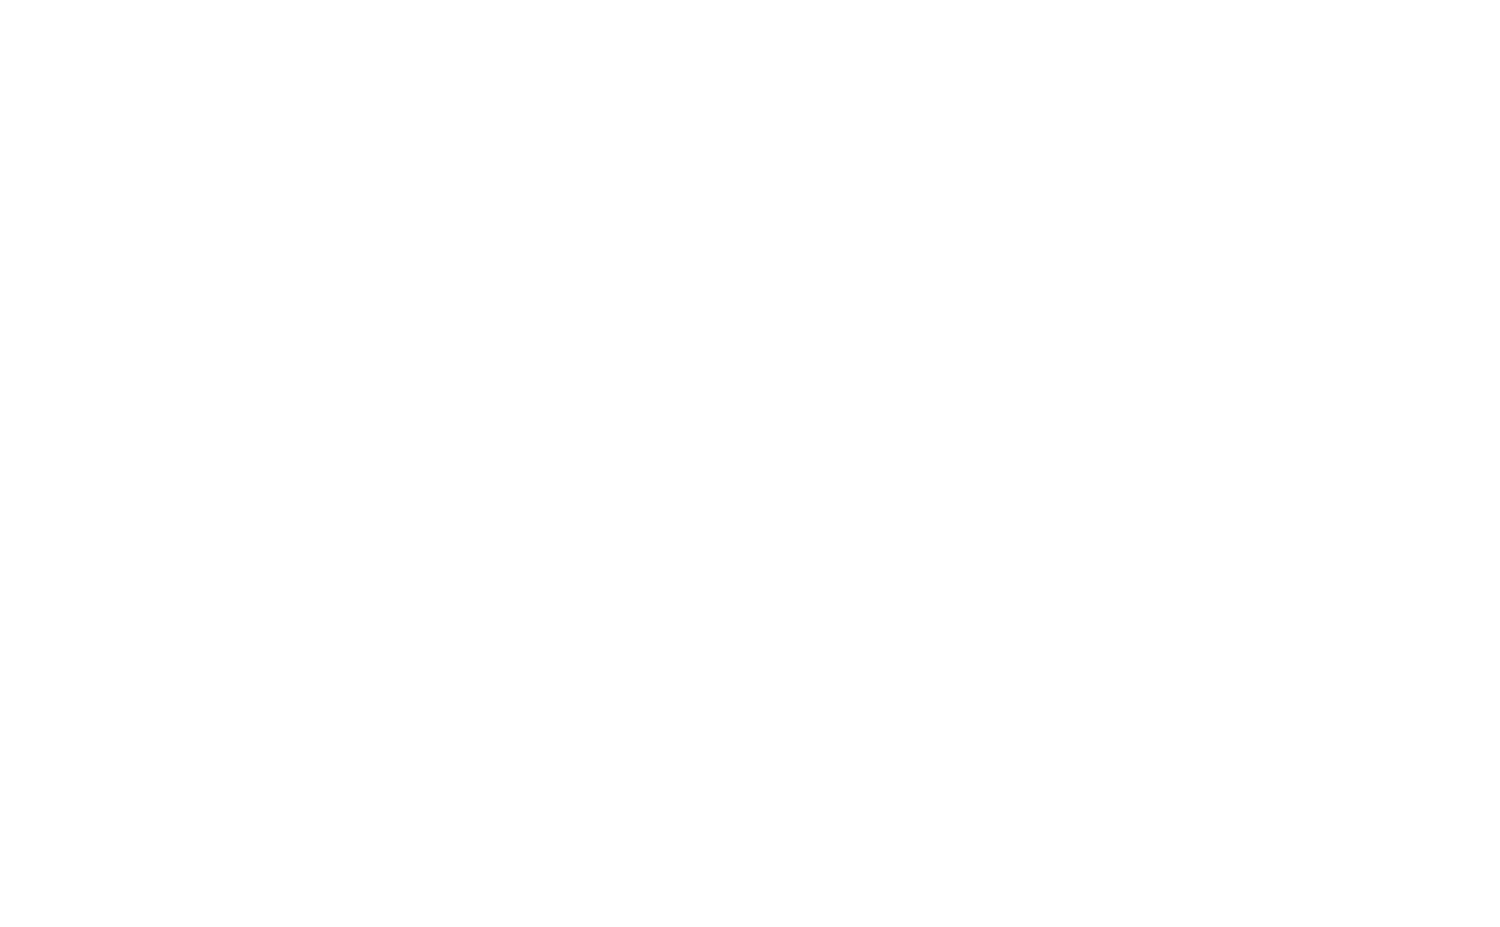 Securing Your Path